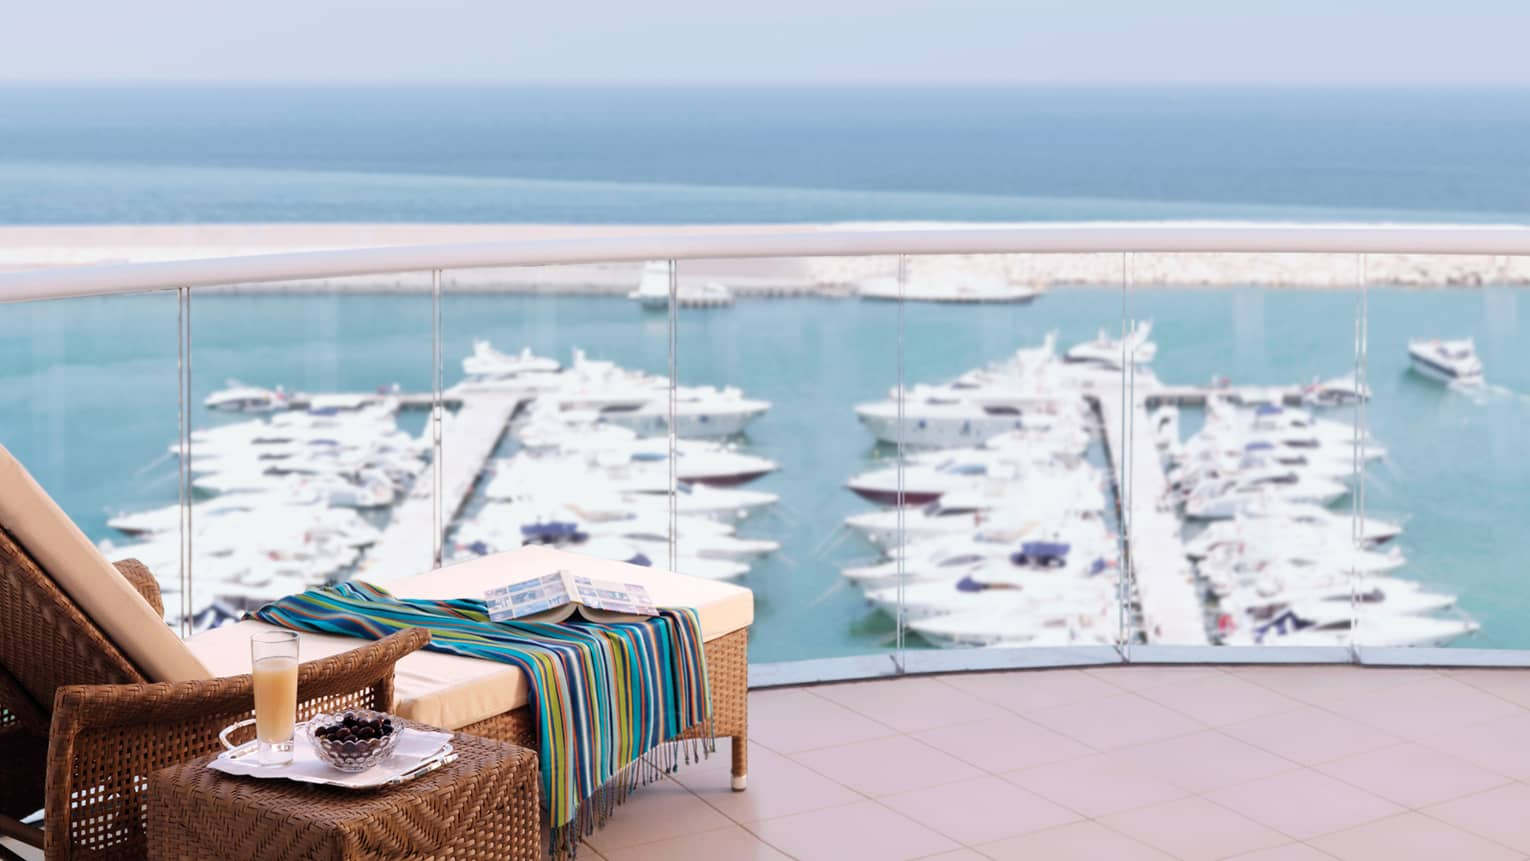 Colourful striped towel draped over wicker patio ottoman, book open and face down, rows of boats in harbour below